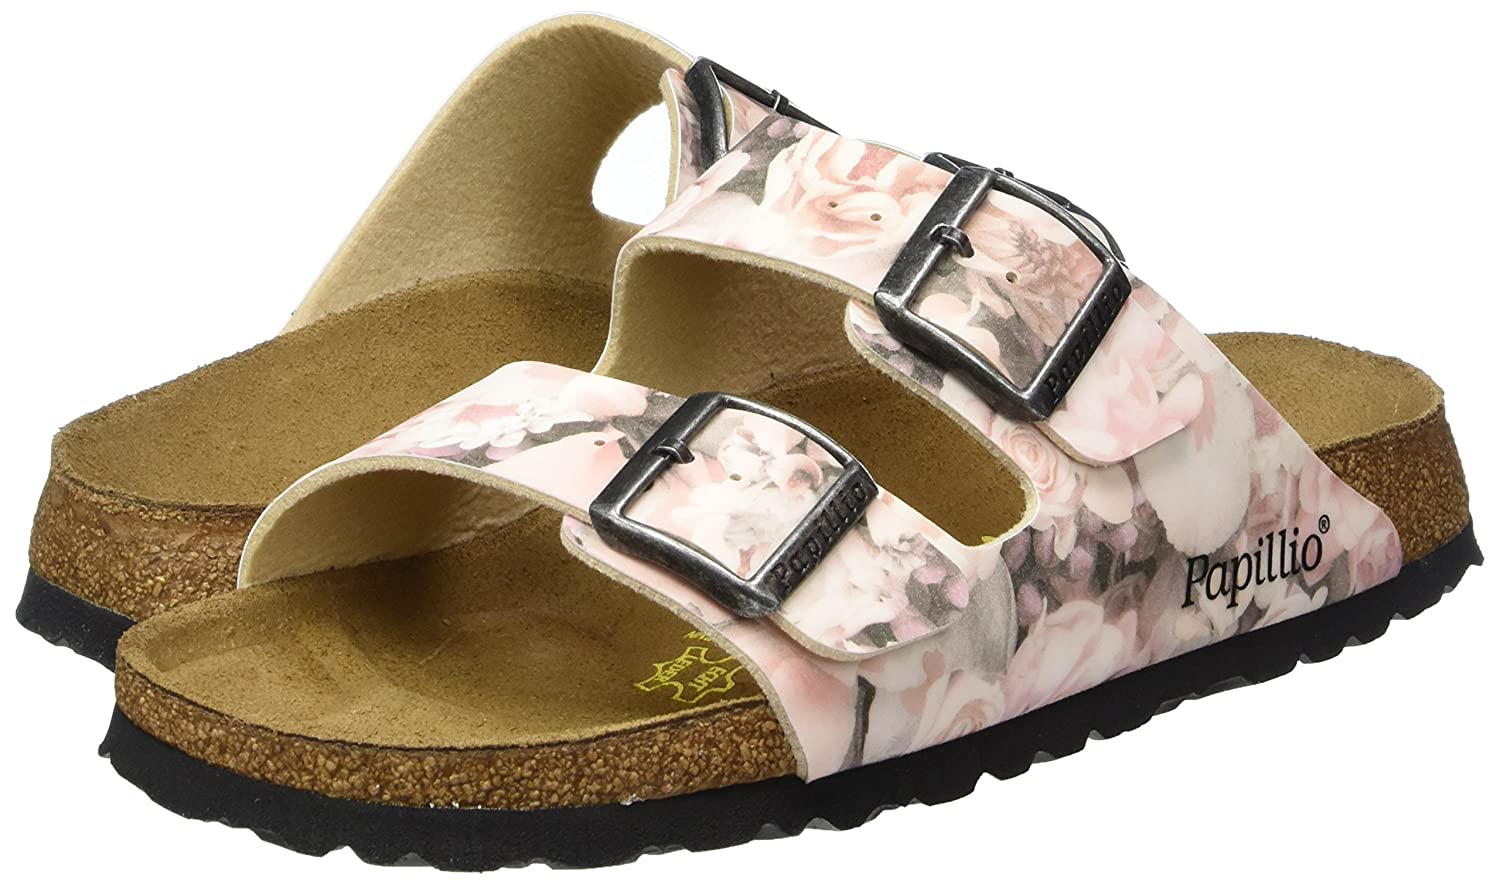 ca06a90bc36a Papillio Womens Arizona Sandals Silky Rose Pink  Amazon.co.uk  Shoes   Bags